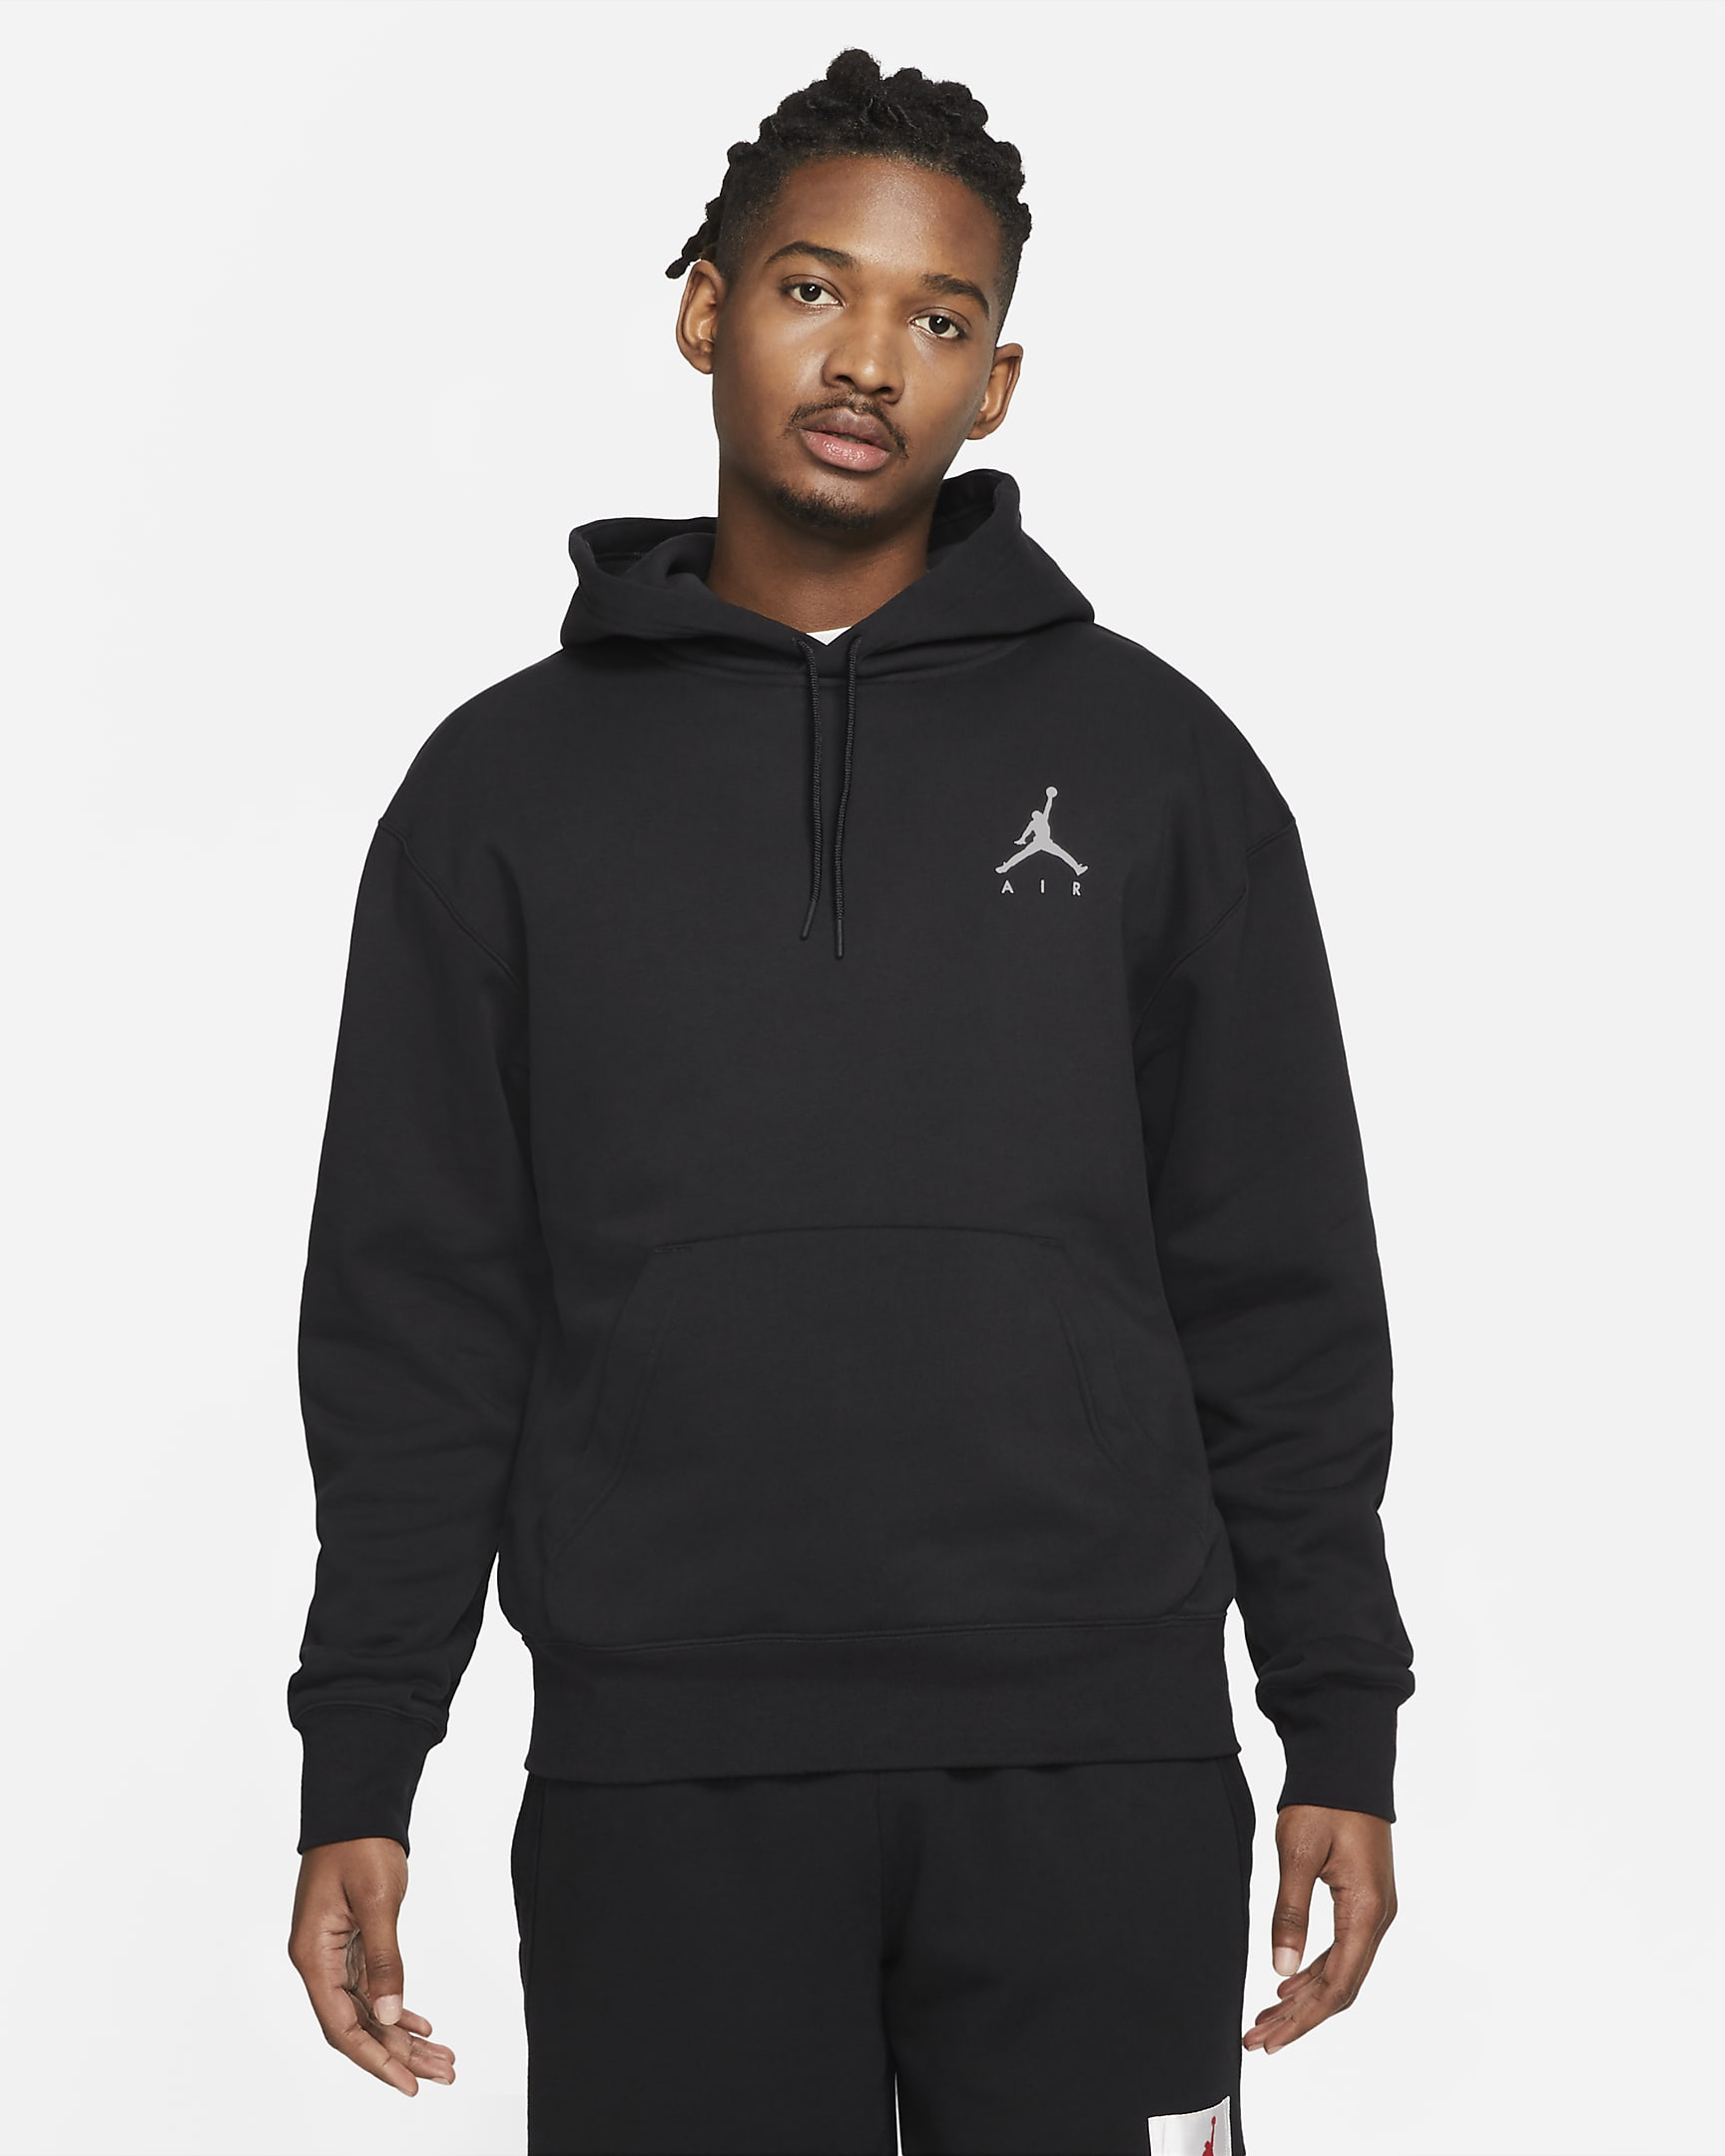 jordan-jumpman-air-mens-fleece-pullover-hoodie-4xTHck-2